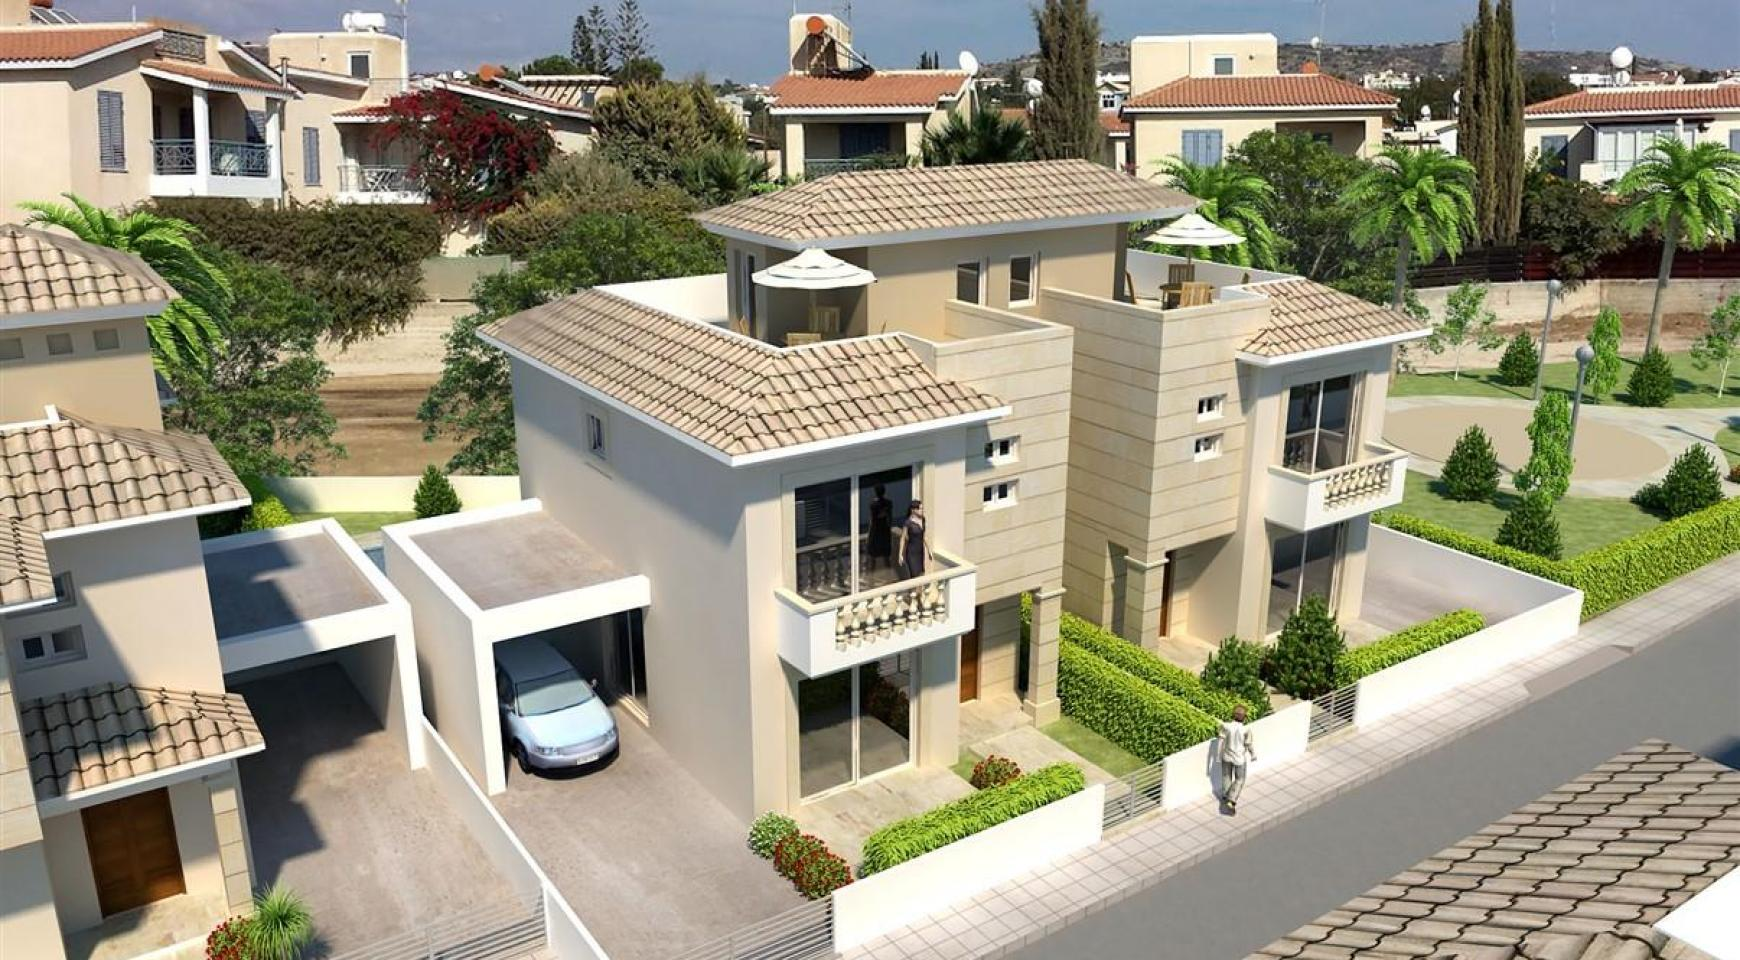 3 Bedroom Villa within a New Project - 25